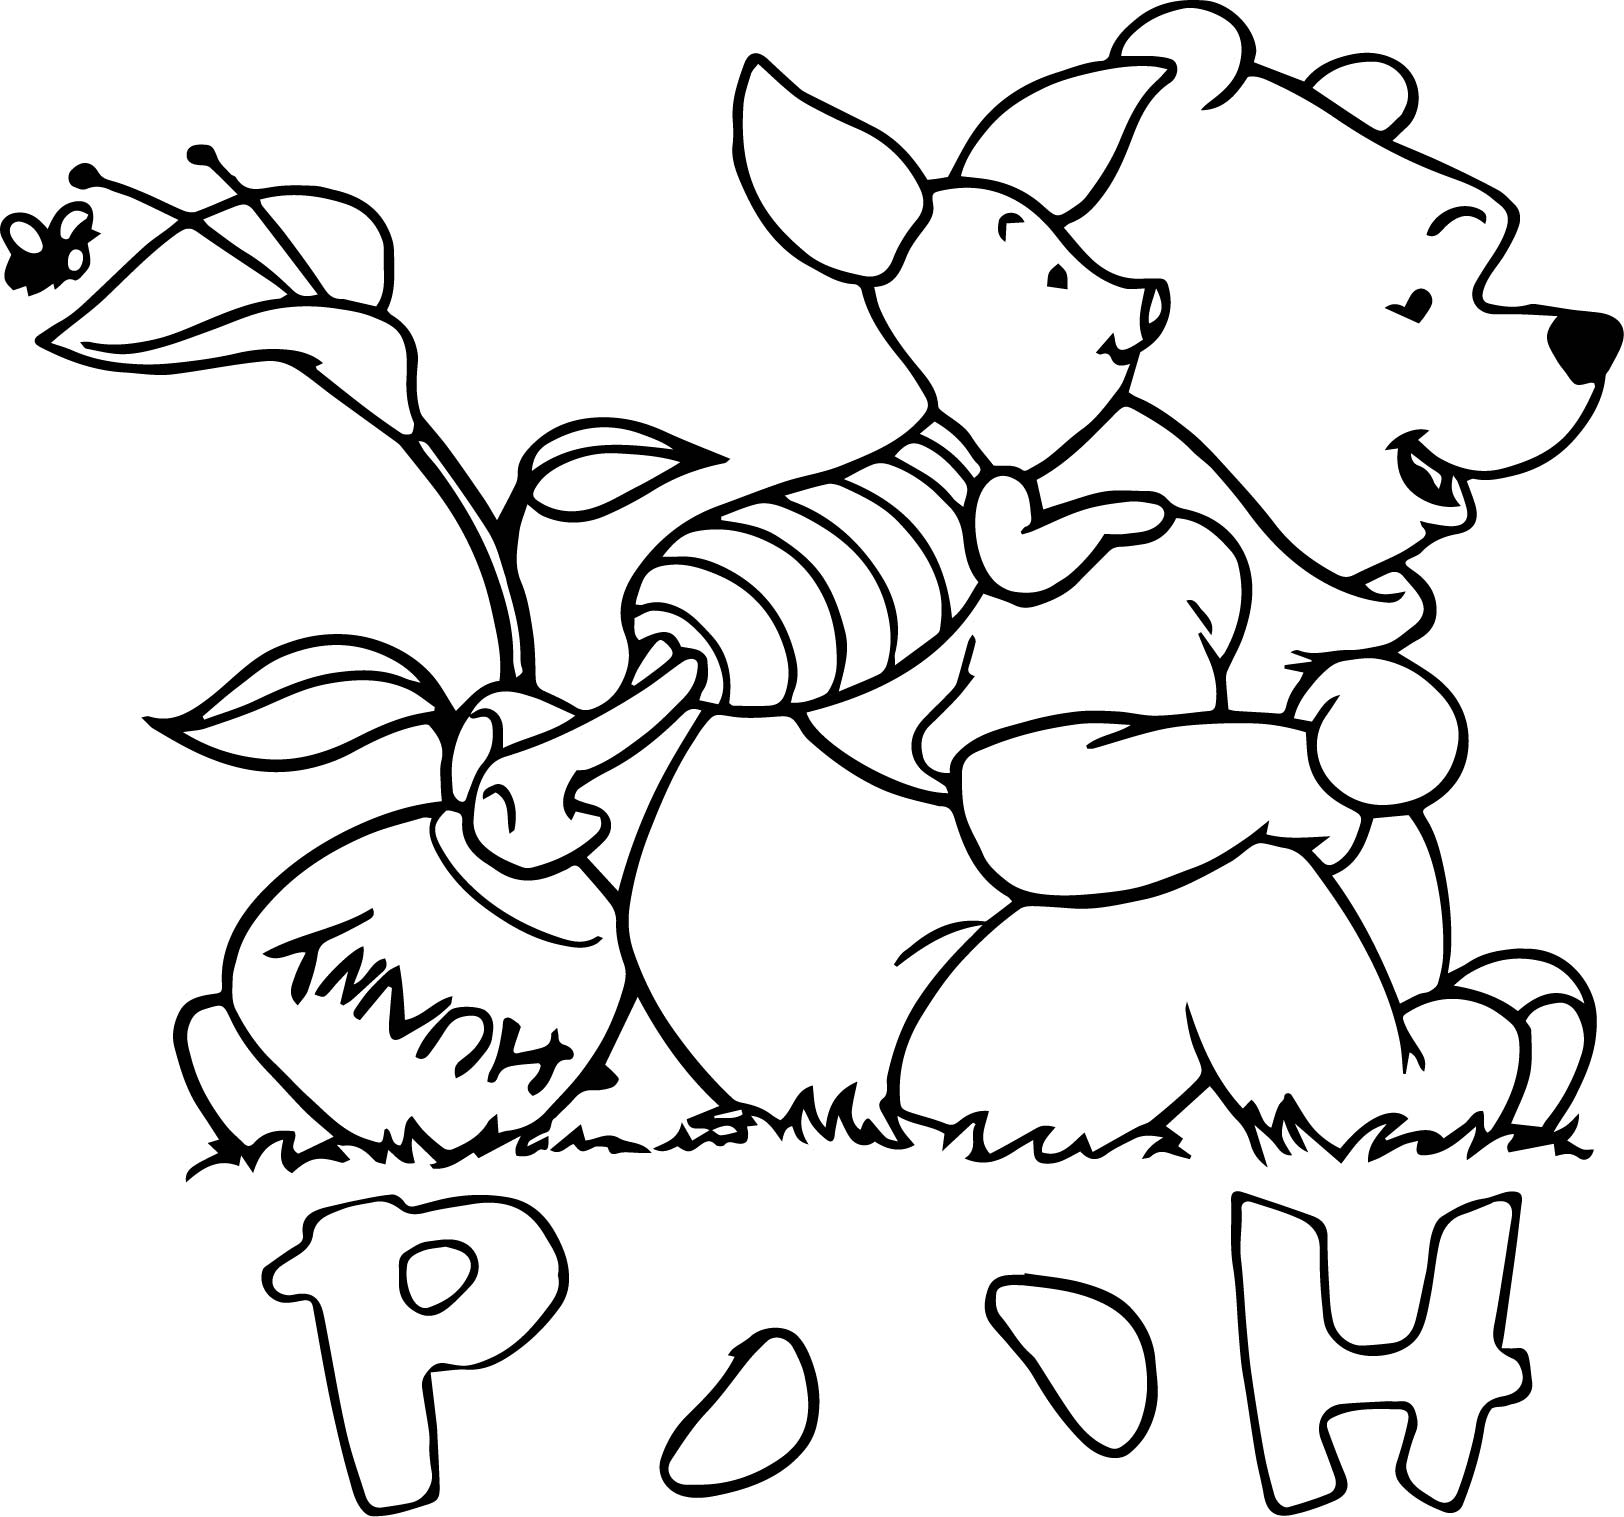 Baby piglet winnie the pooh looking coloring page for Pooh and piglet coloring pages